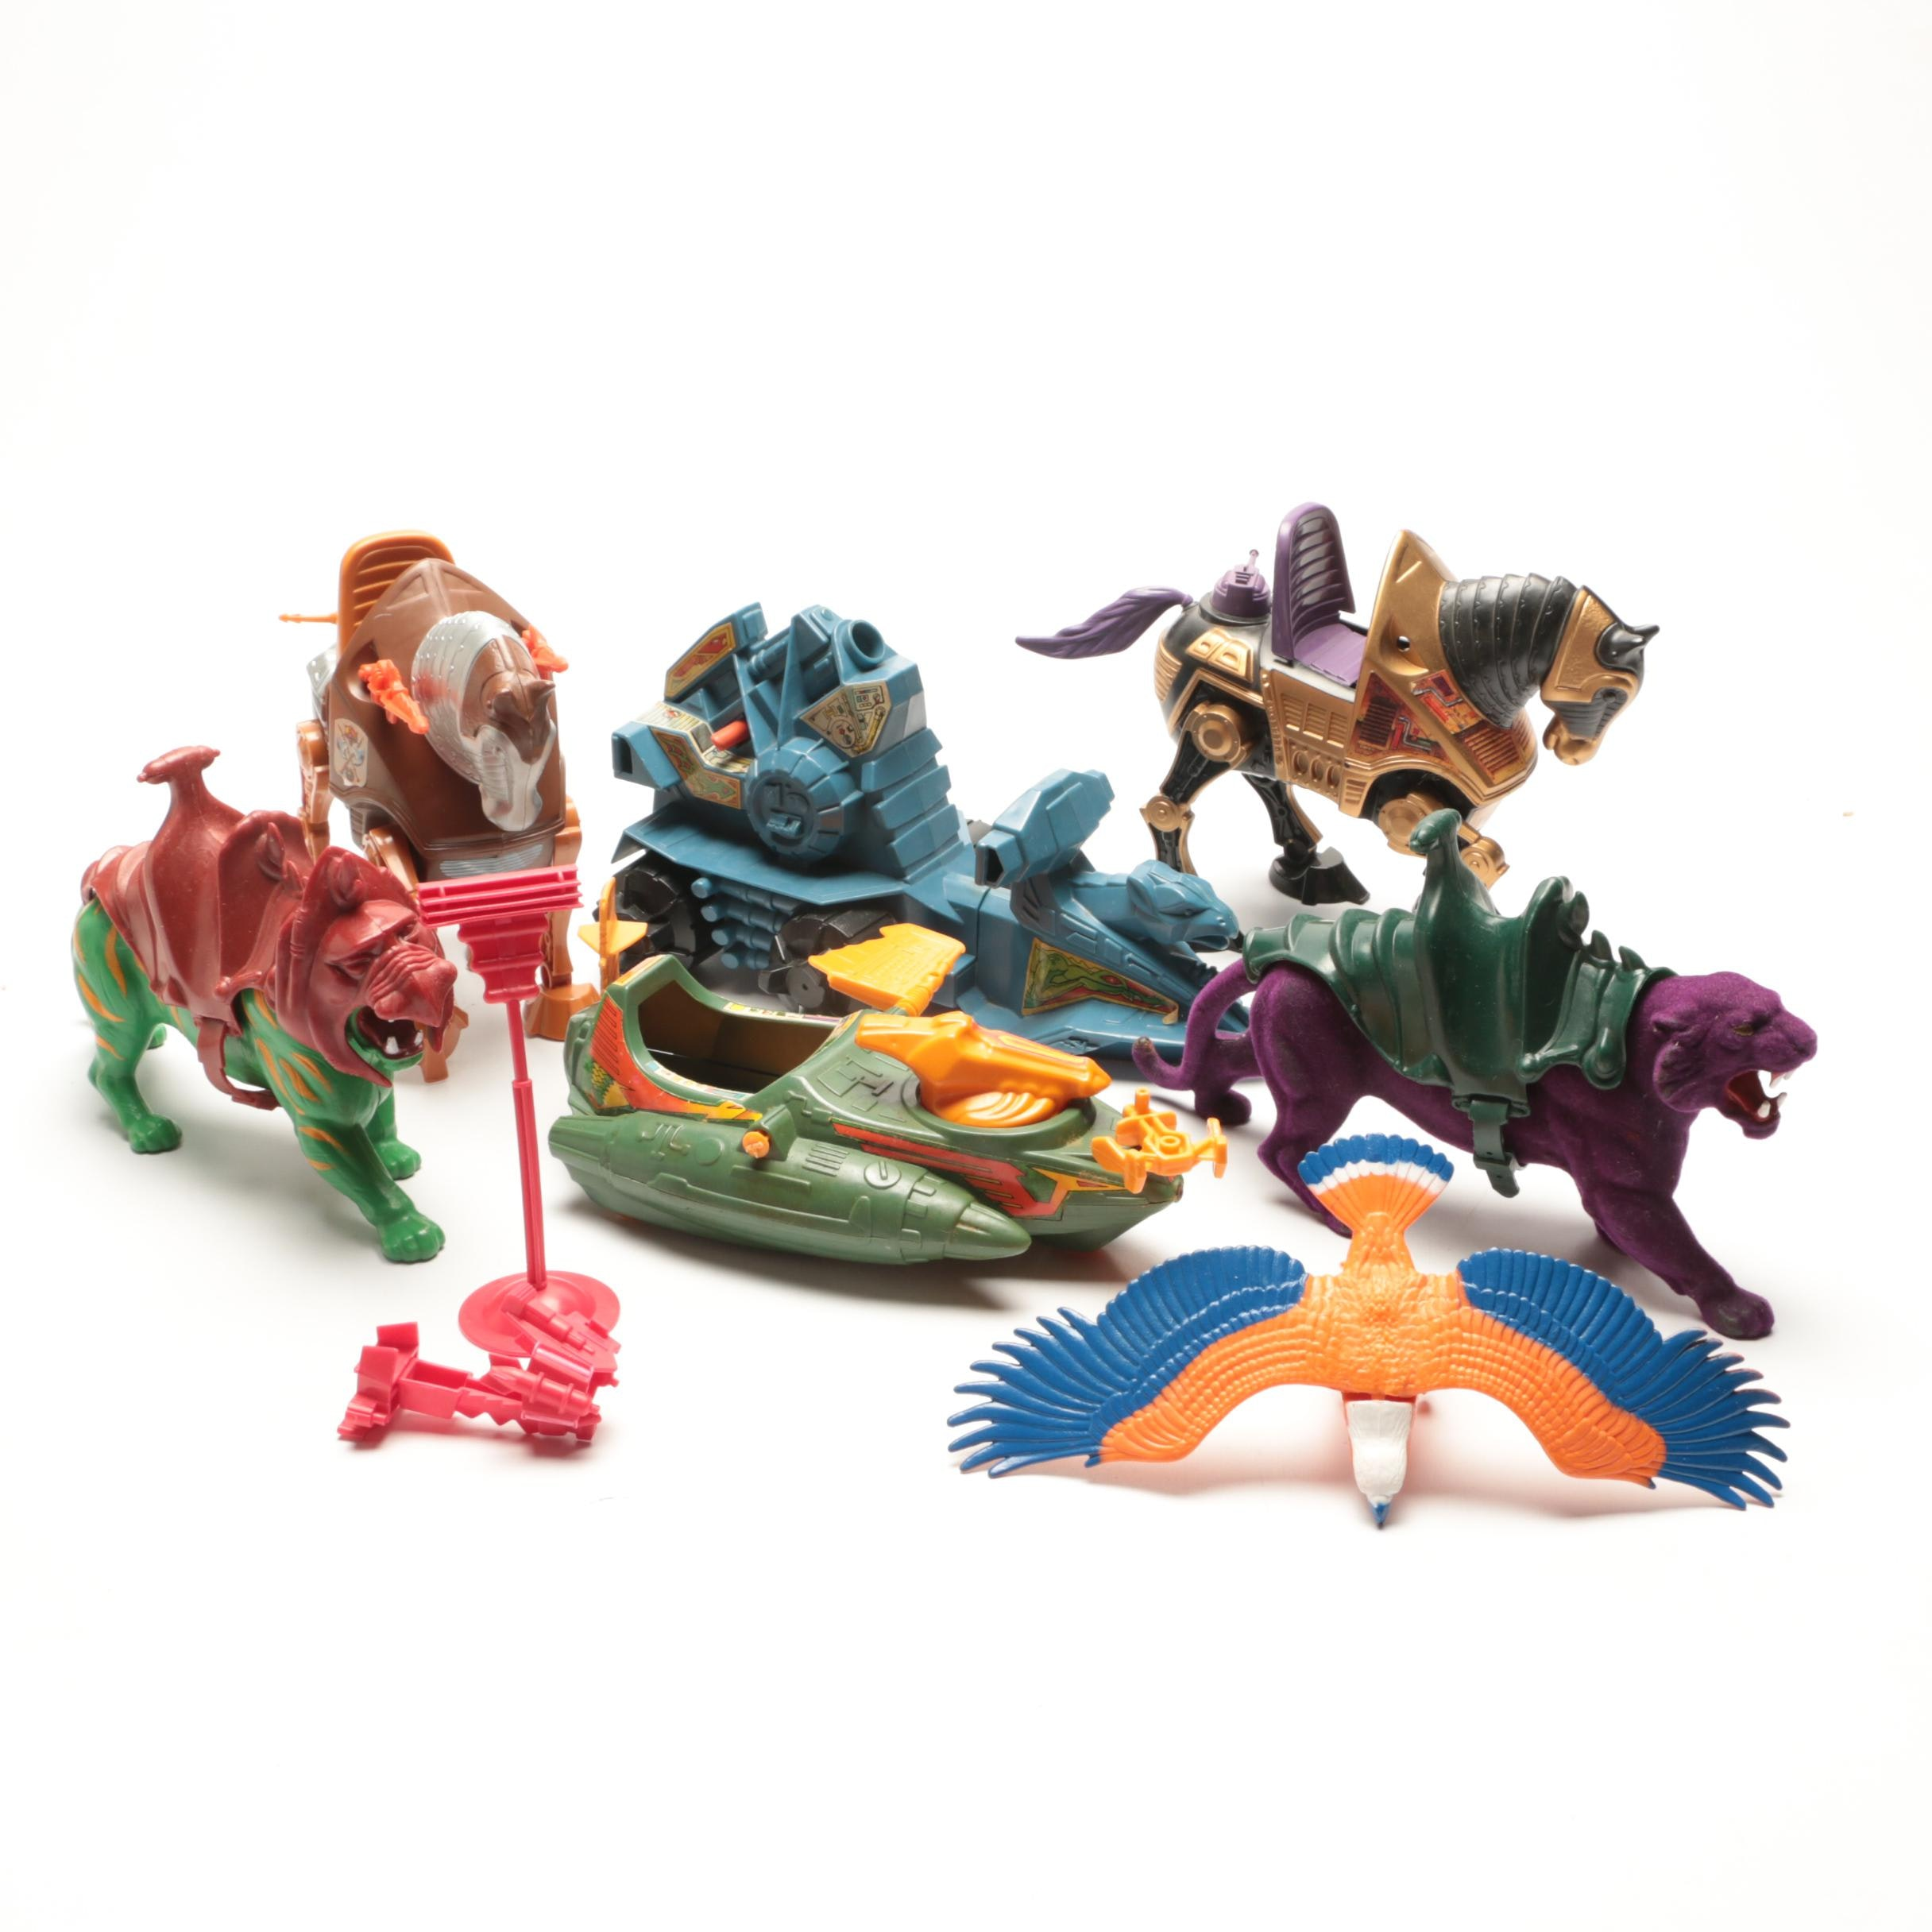 Collection of He Man Masters of the Universe Toys by Mattel